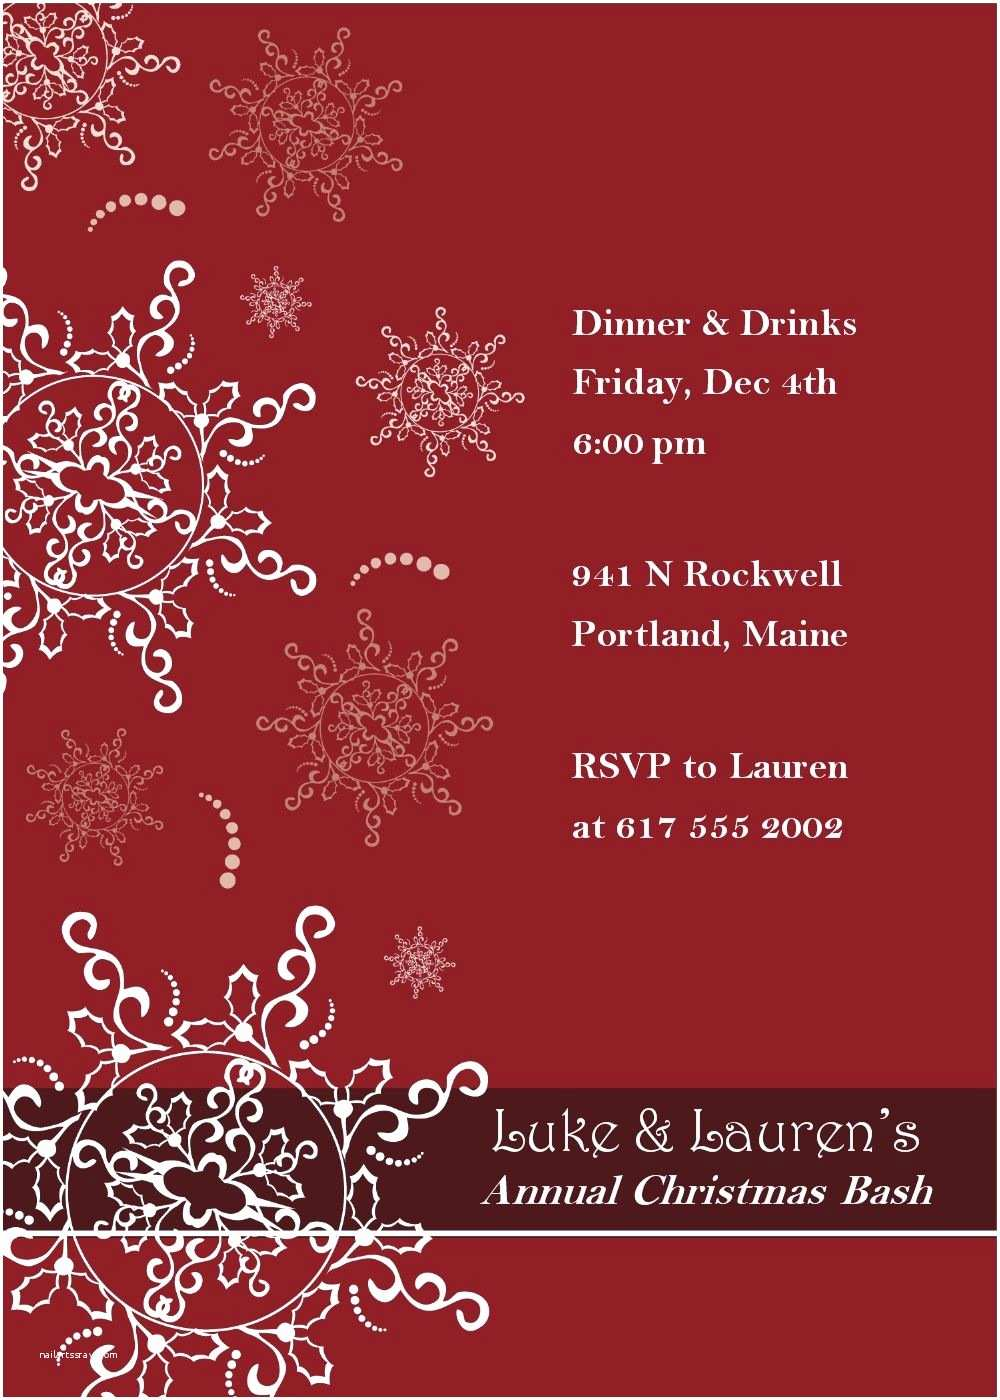 Holiday Party Invitation Template Free An Invitation to Depict the Holiday Spirit and Invite the